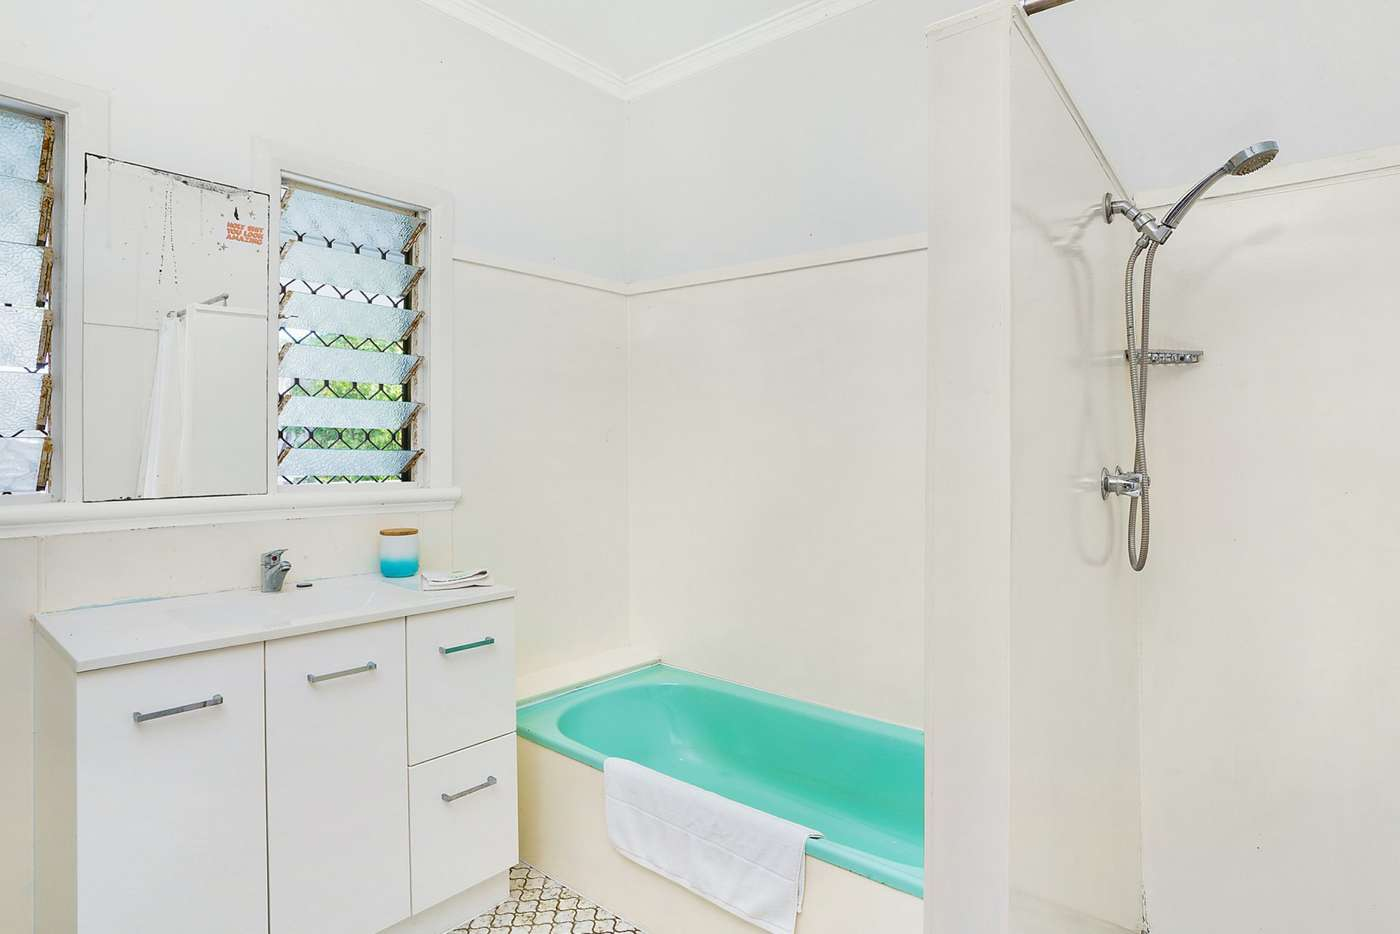 Seventh view of Homely house listing, 273 Spence Street, Bungalow QLD 4870